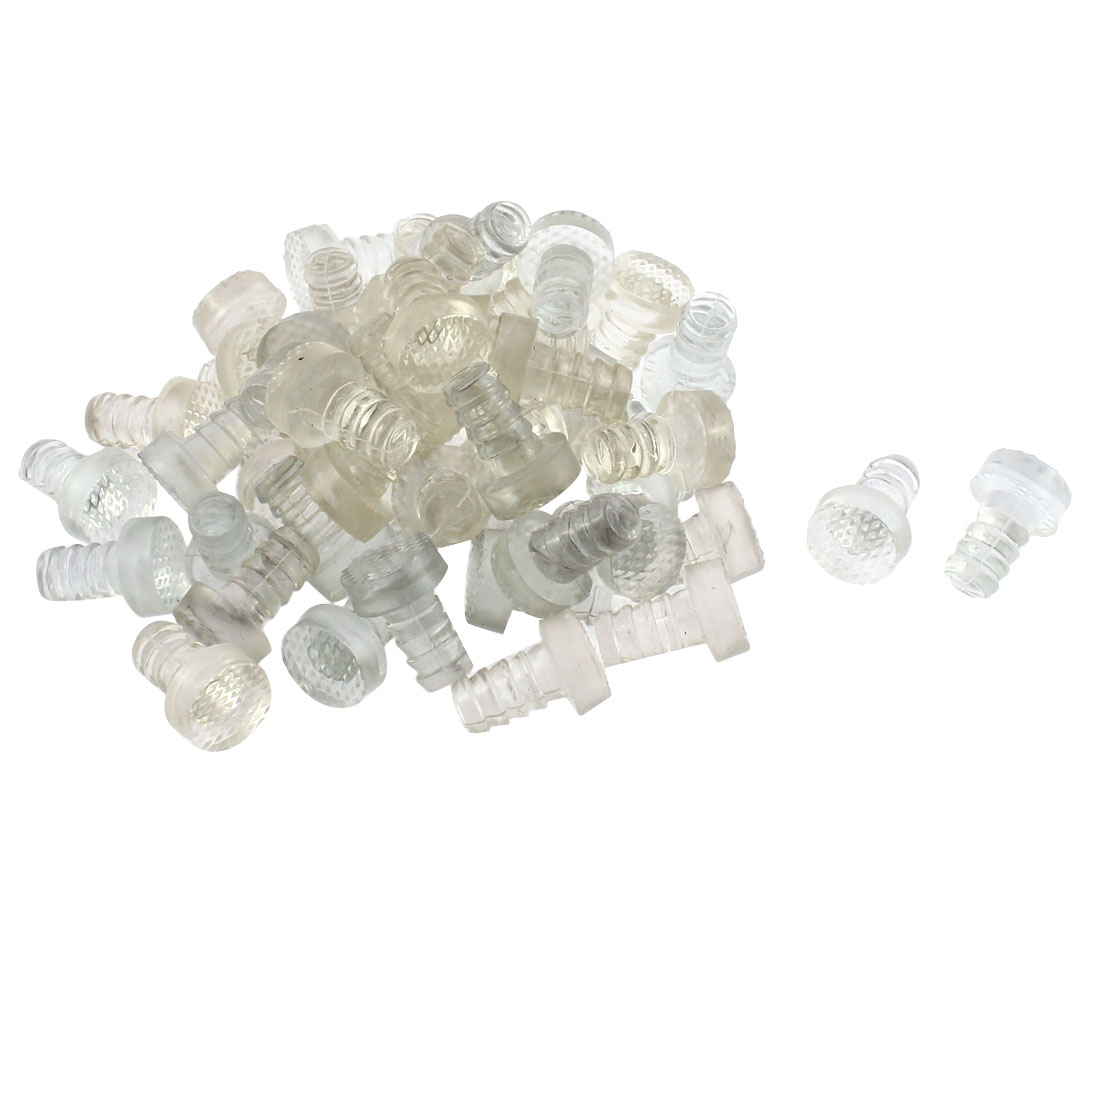 Furniture Leg Anticollision Tube Inserts Cover 9mm Thread Dia 50 Pcs